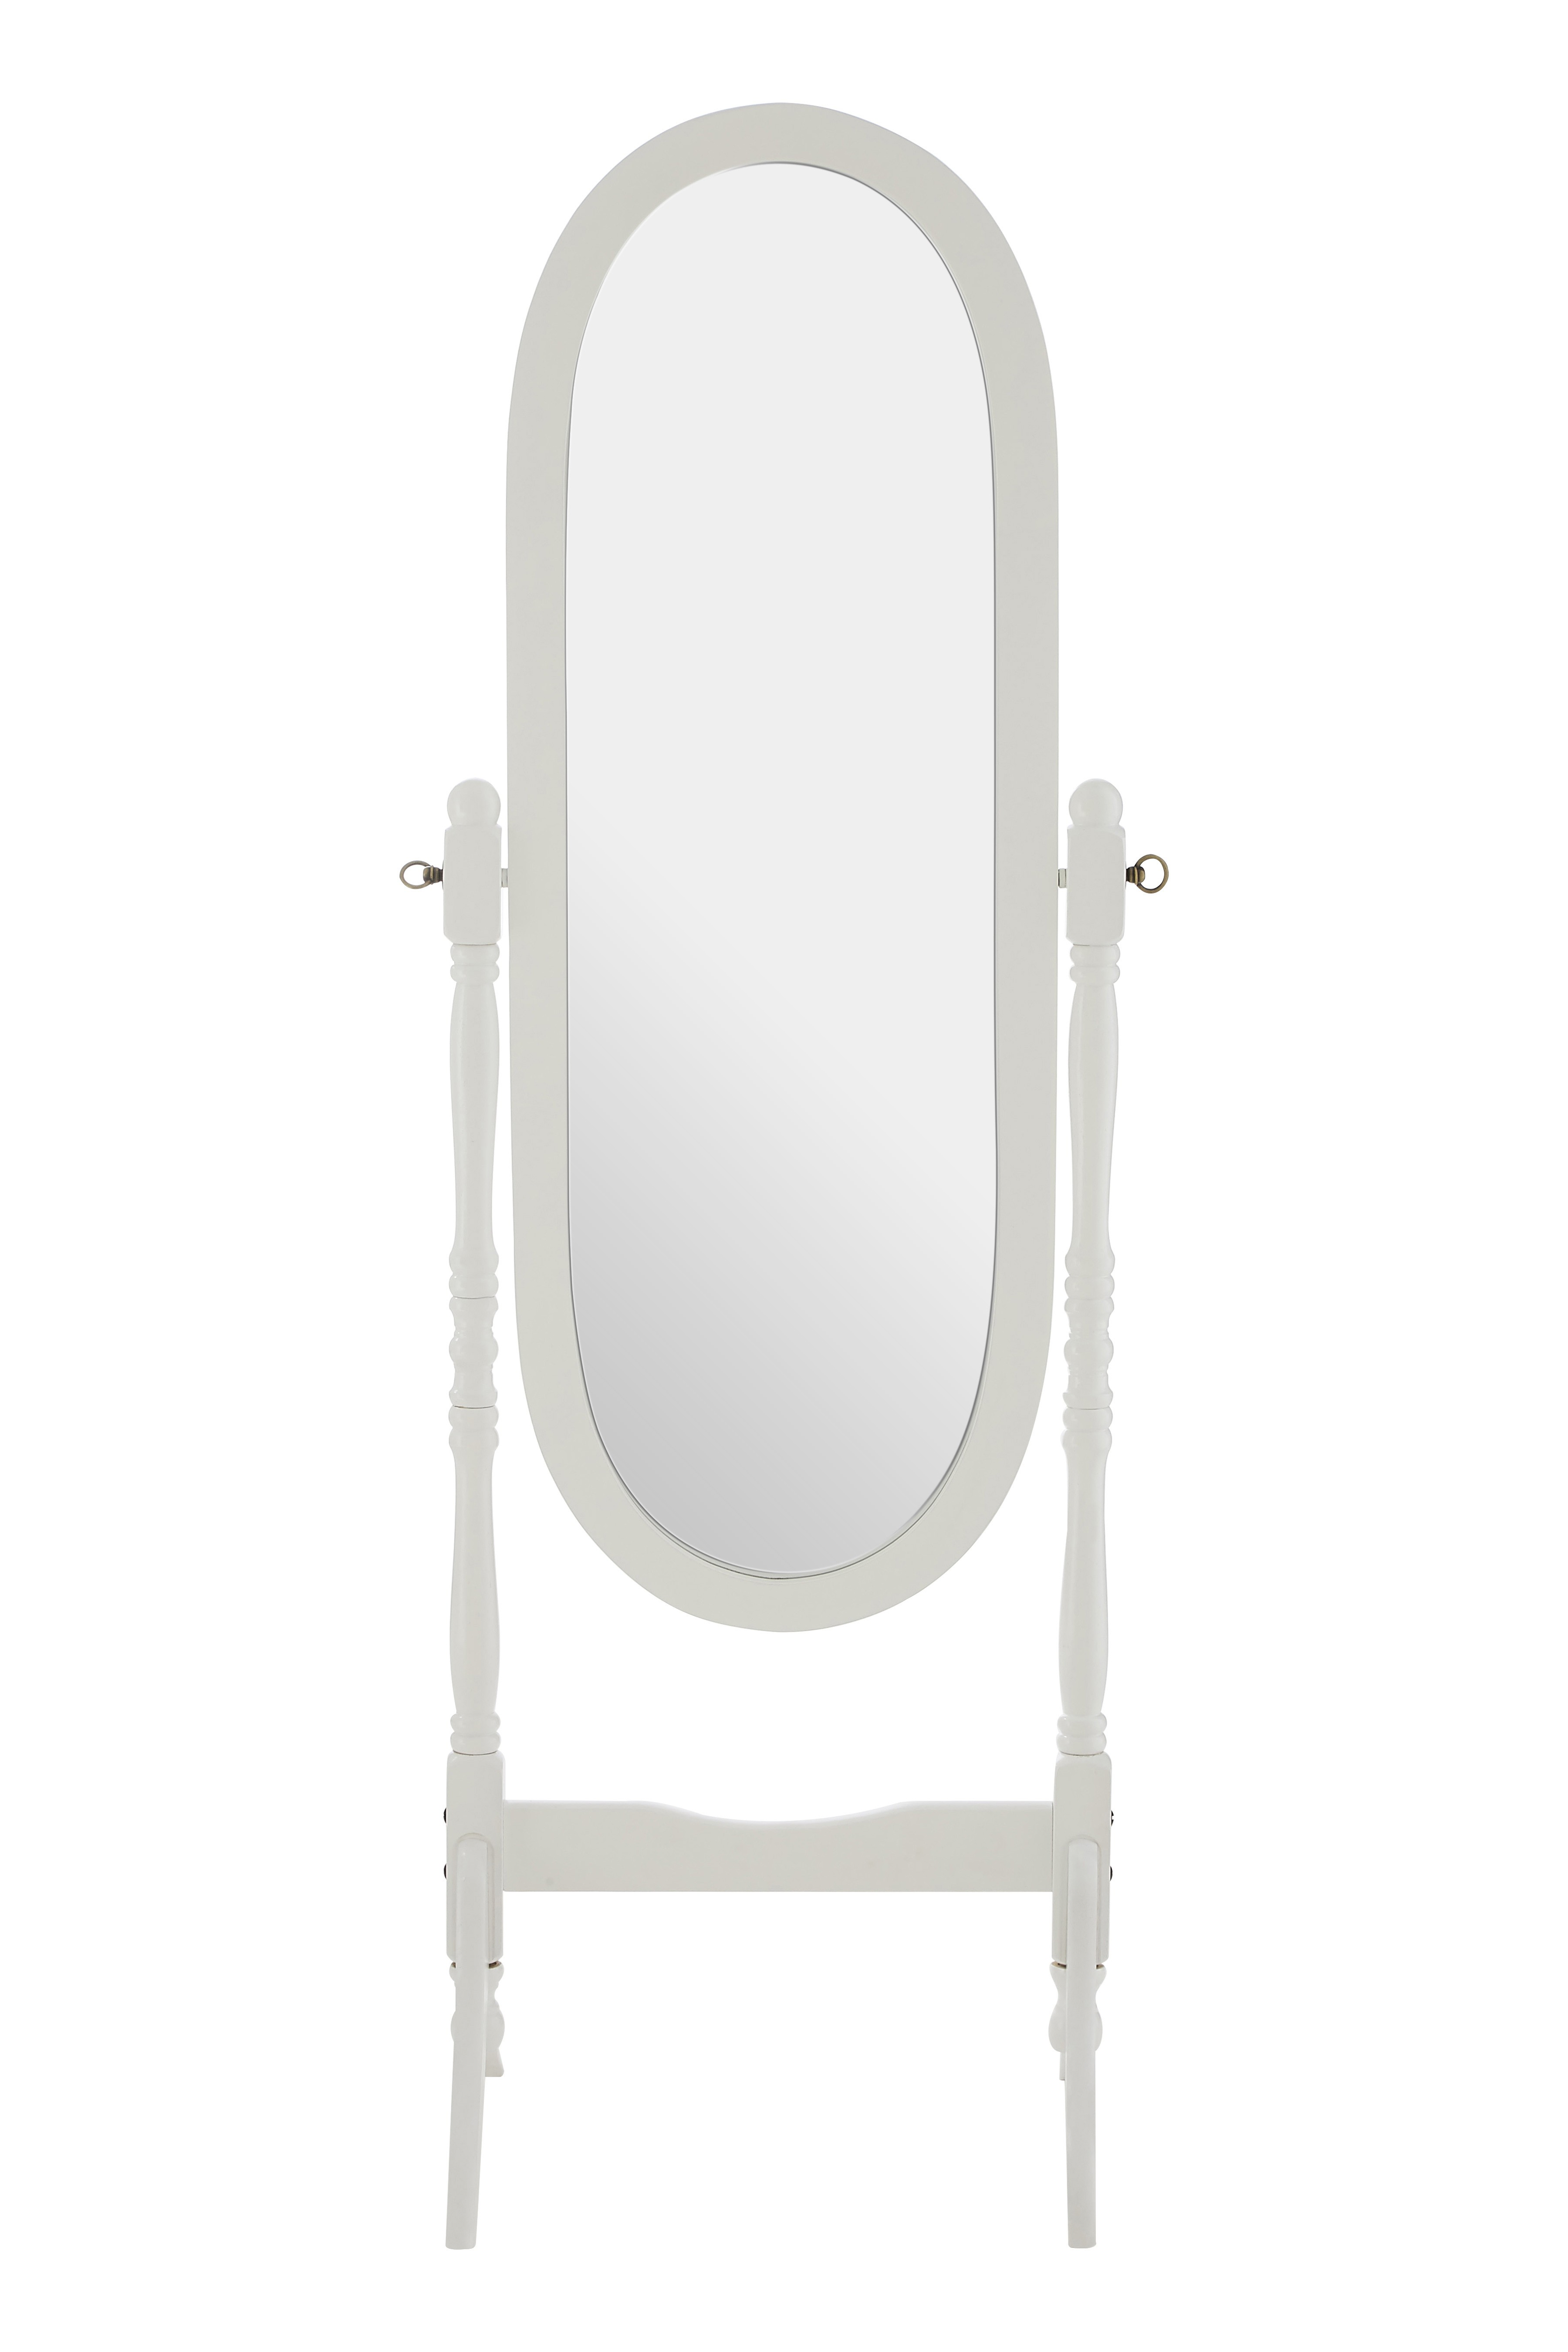 Oval Cheval Mirror, Floor Standing, White Wood Frame